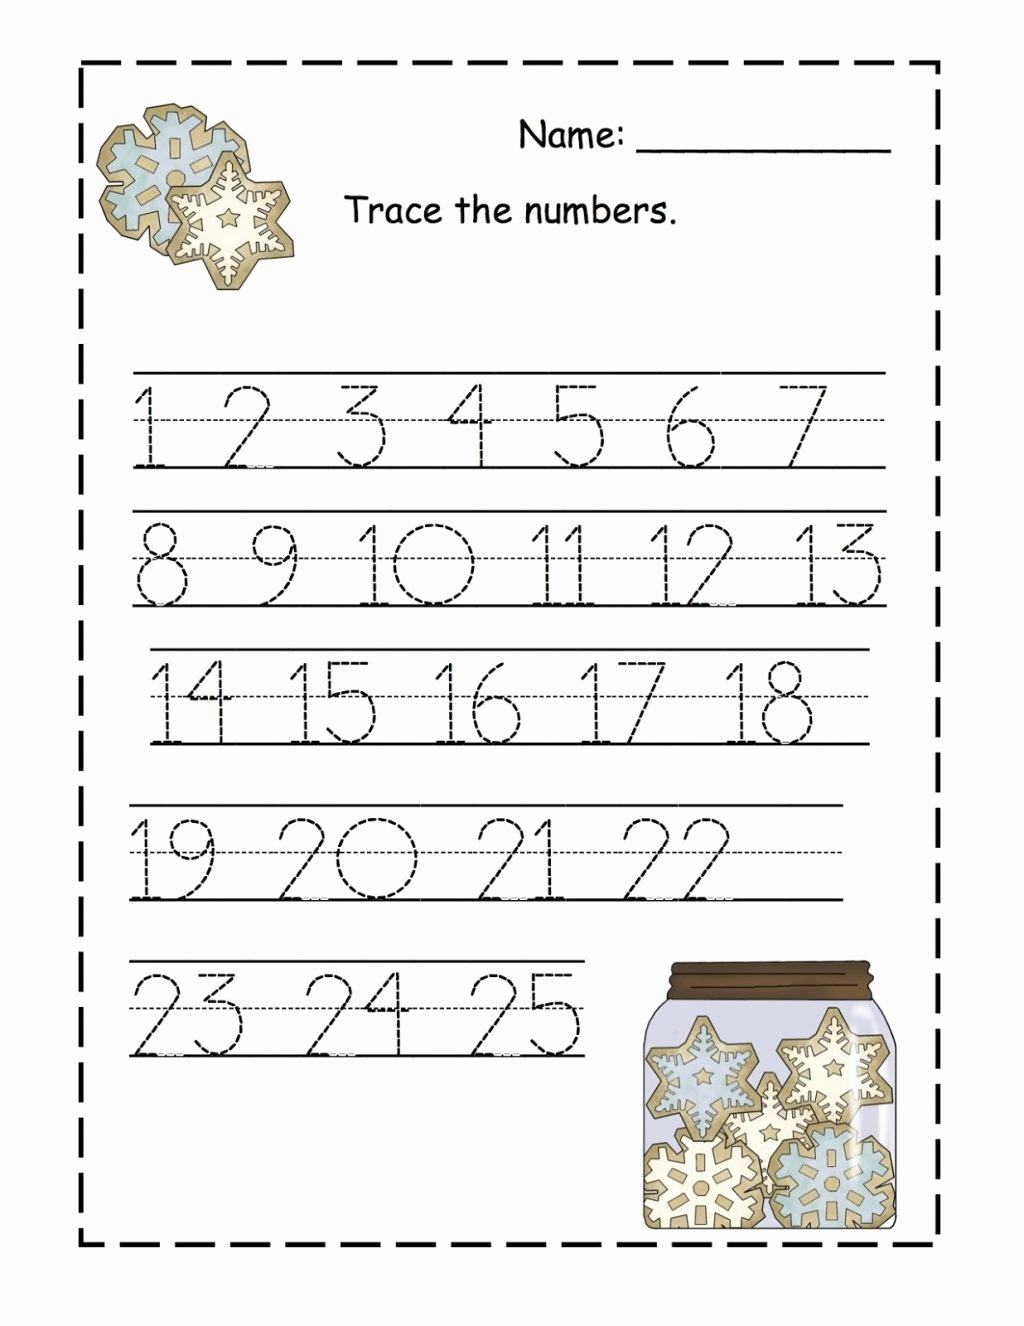 Worksheets for Preschoolers Tracing Inspirational Worksheet Worksheet Preschool Printing Worksheets Fabulous